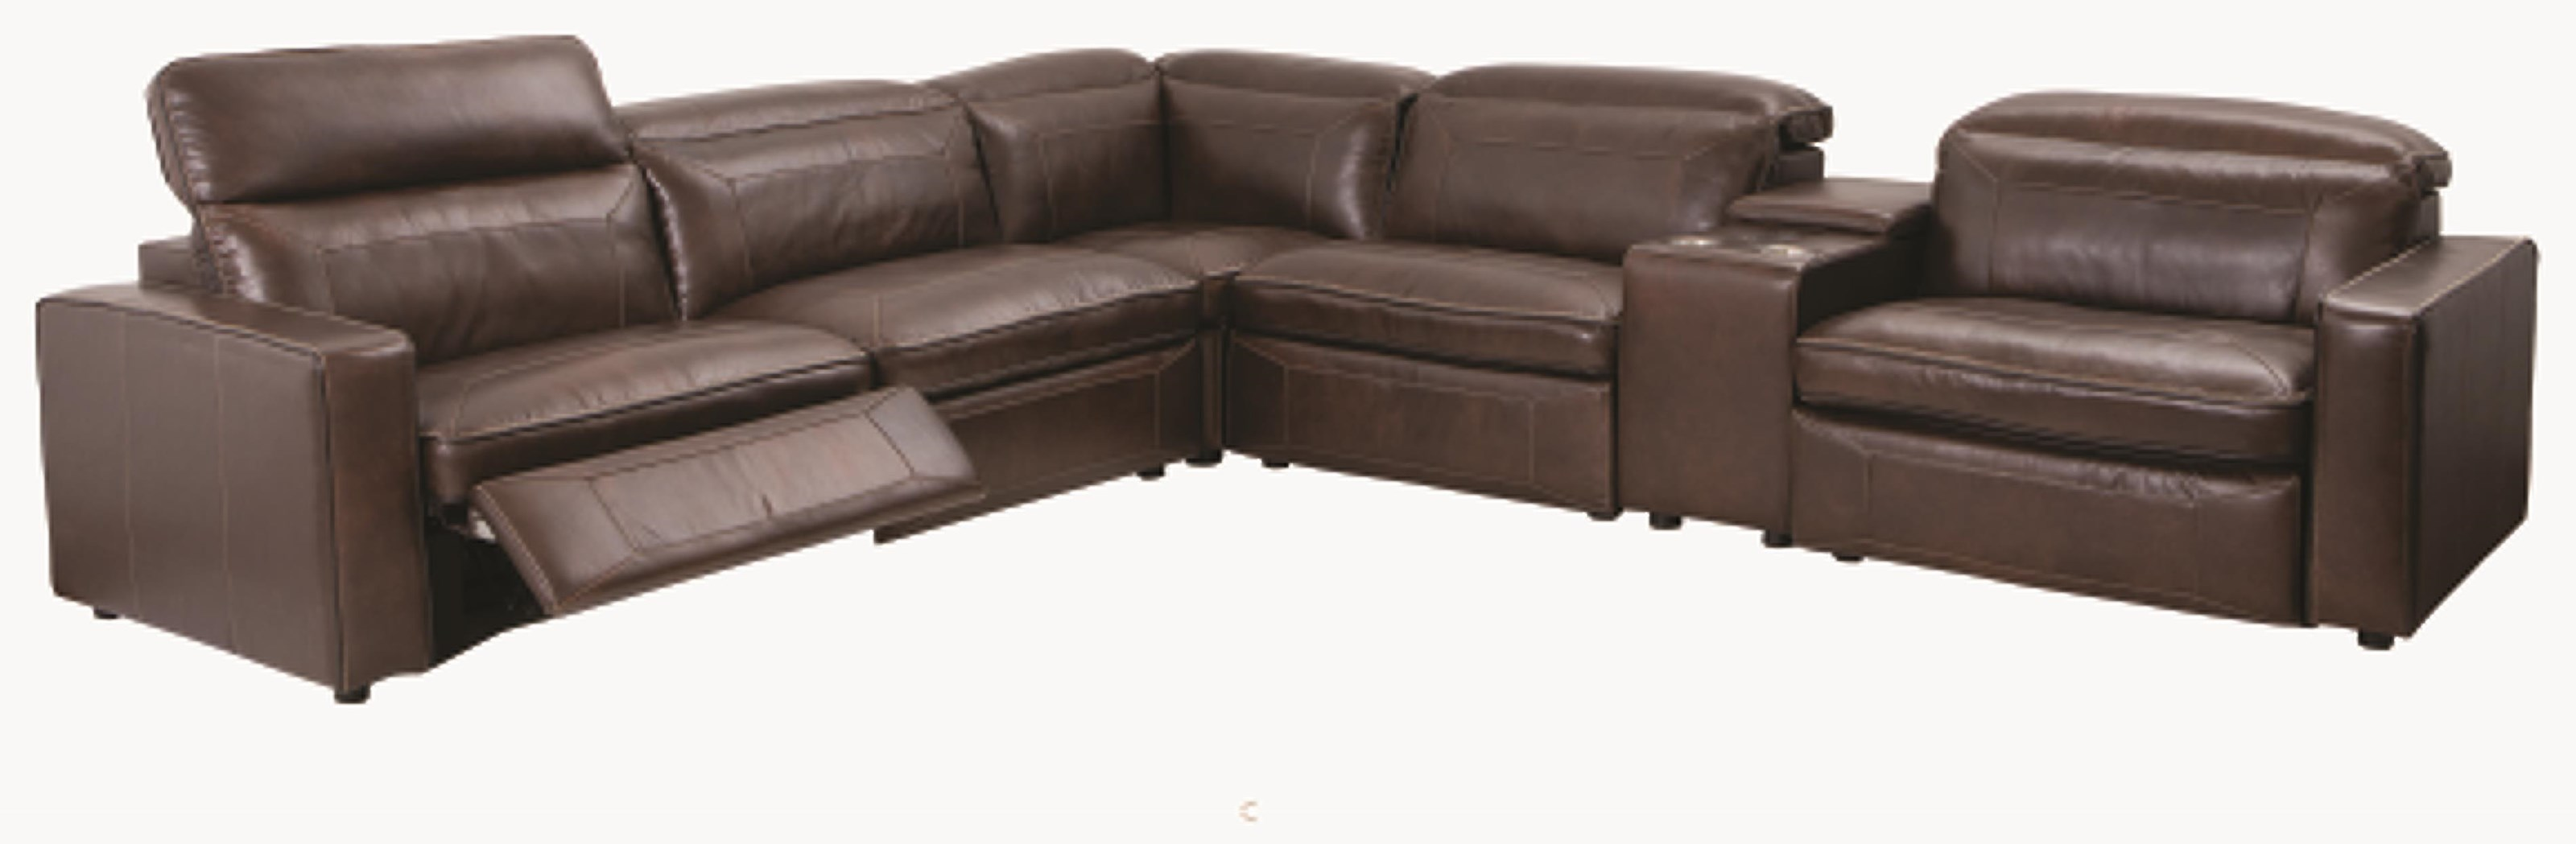 1570 6 Piece Top Grain Leather Match Power Sectio by H317 Logistics at Darvin Furniture